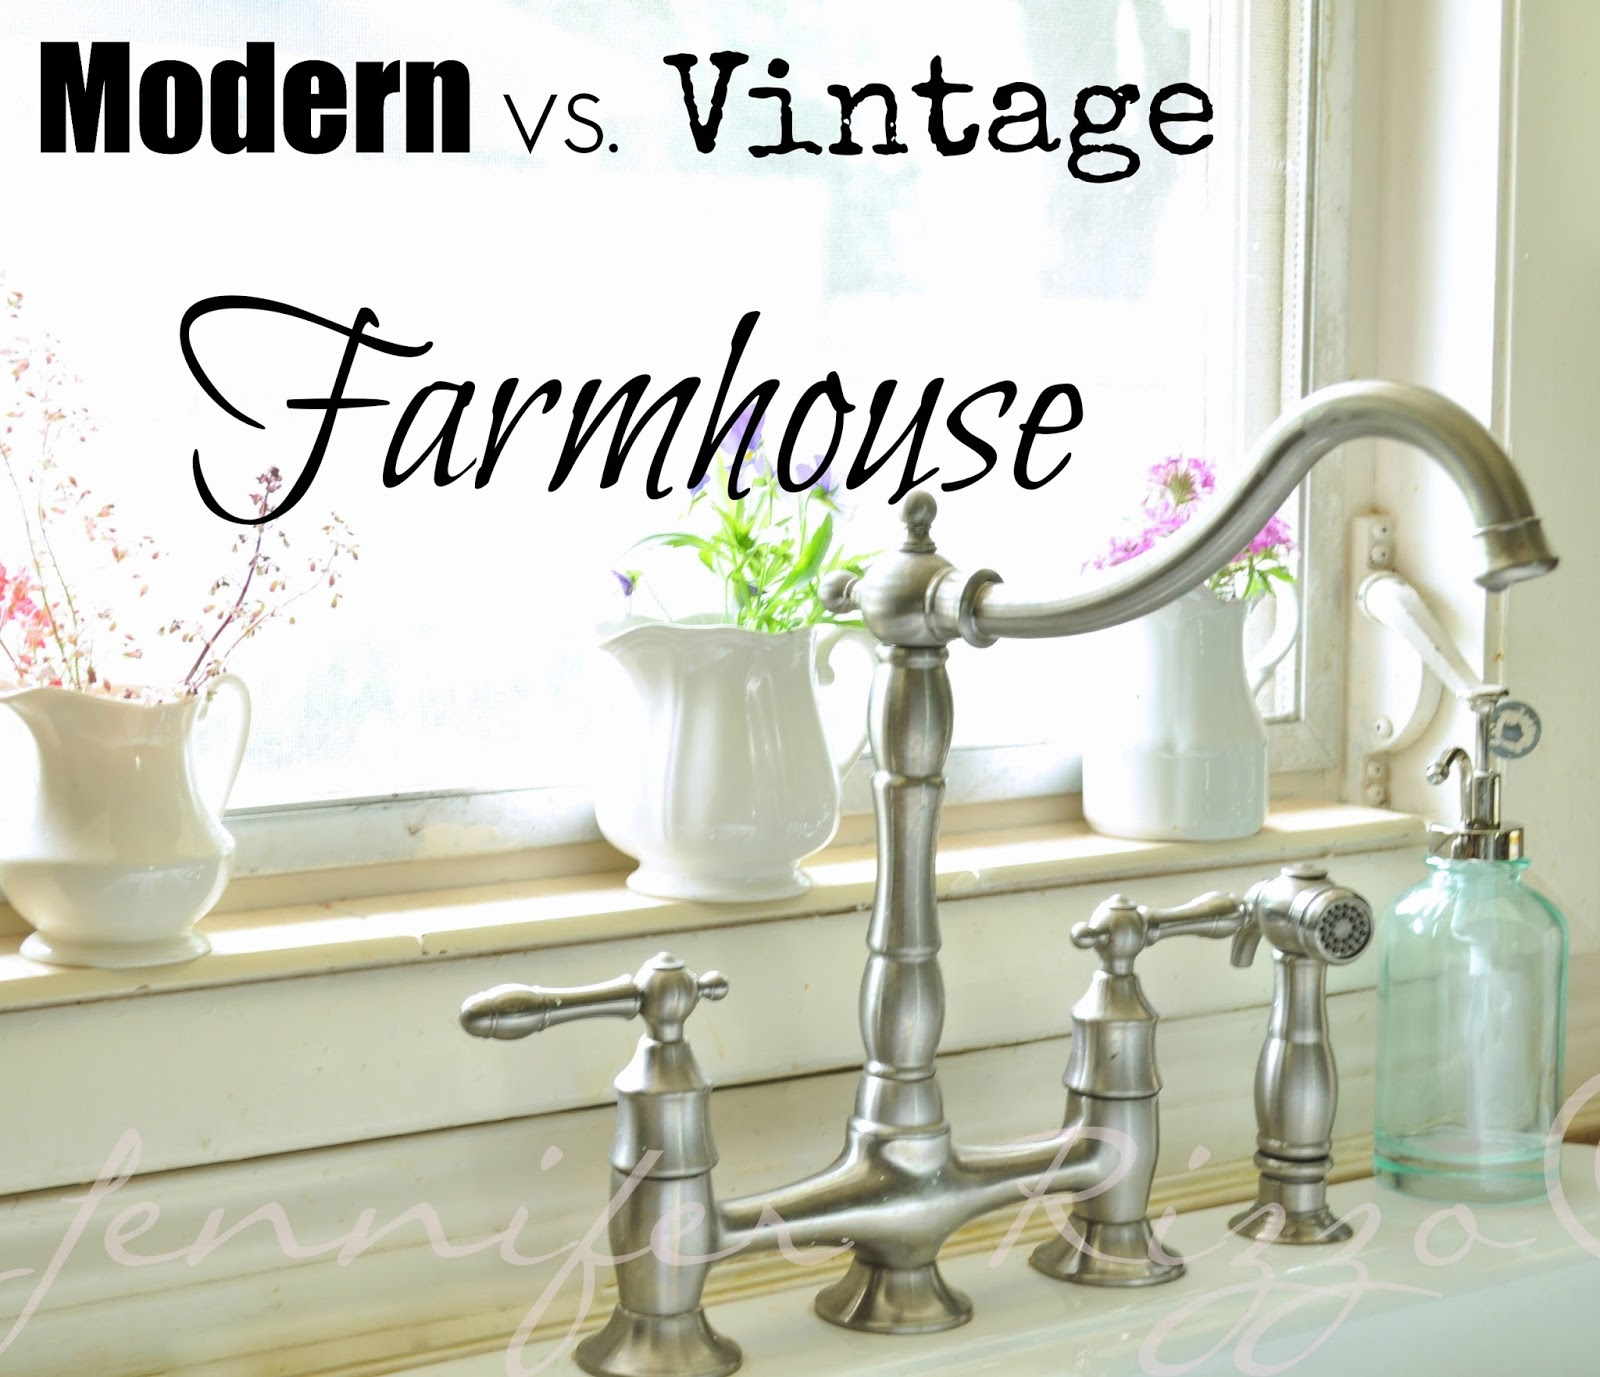 The difference between Modern vs Vintage Farmhouse Jennifer Rizzo